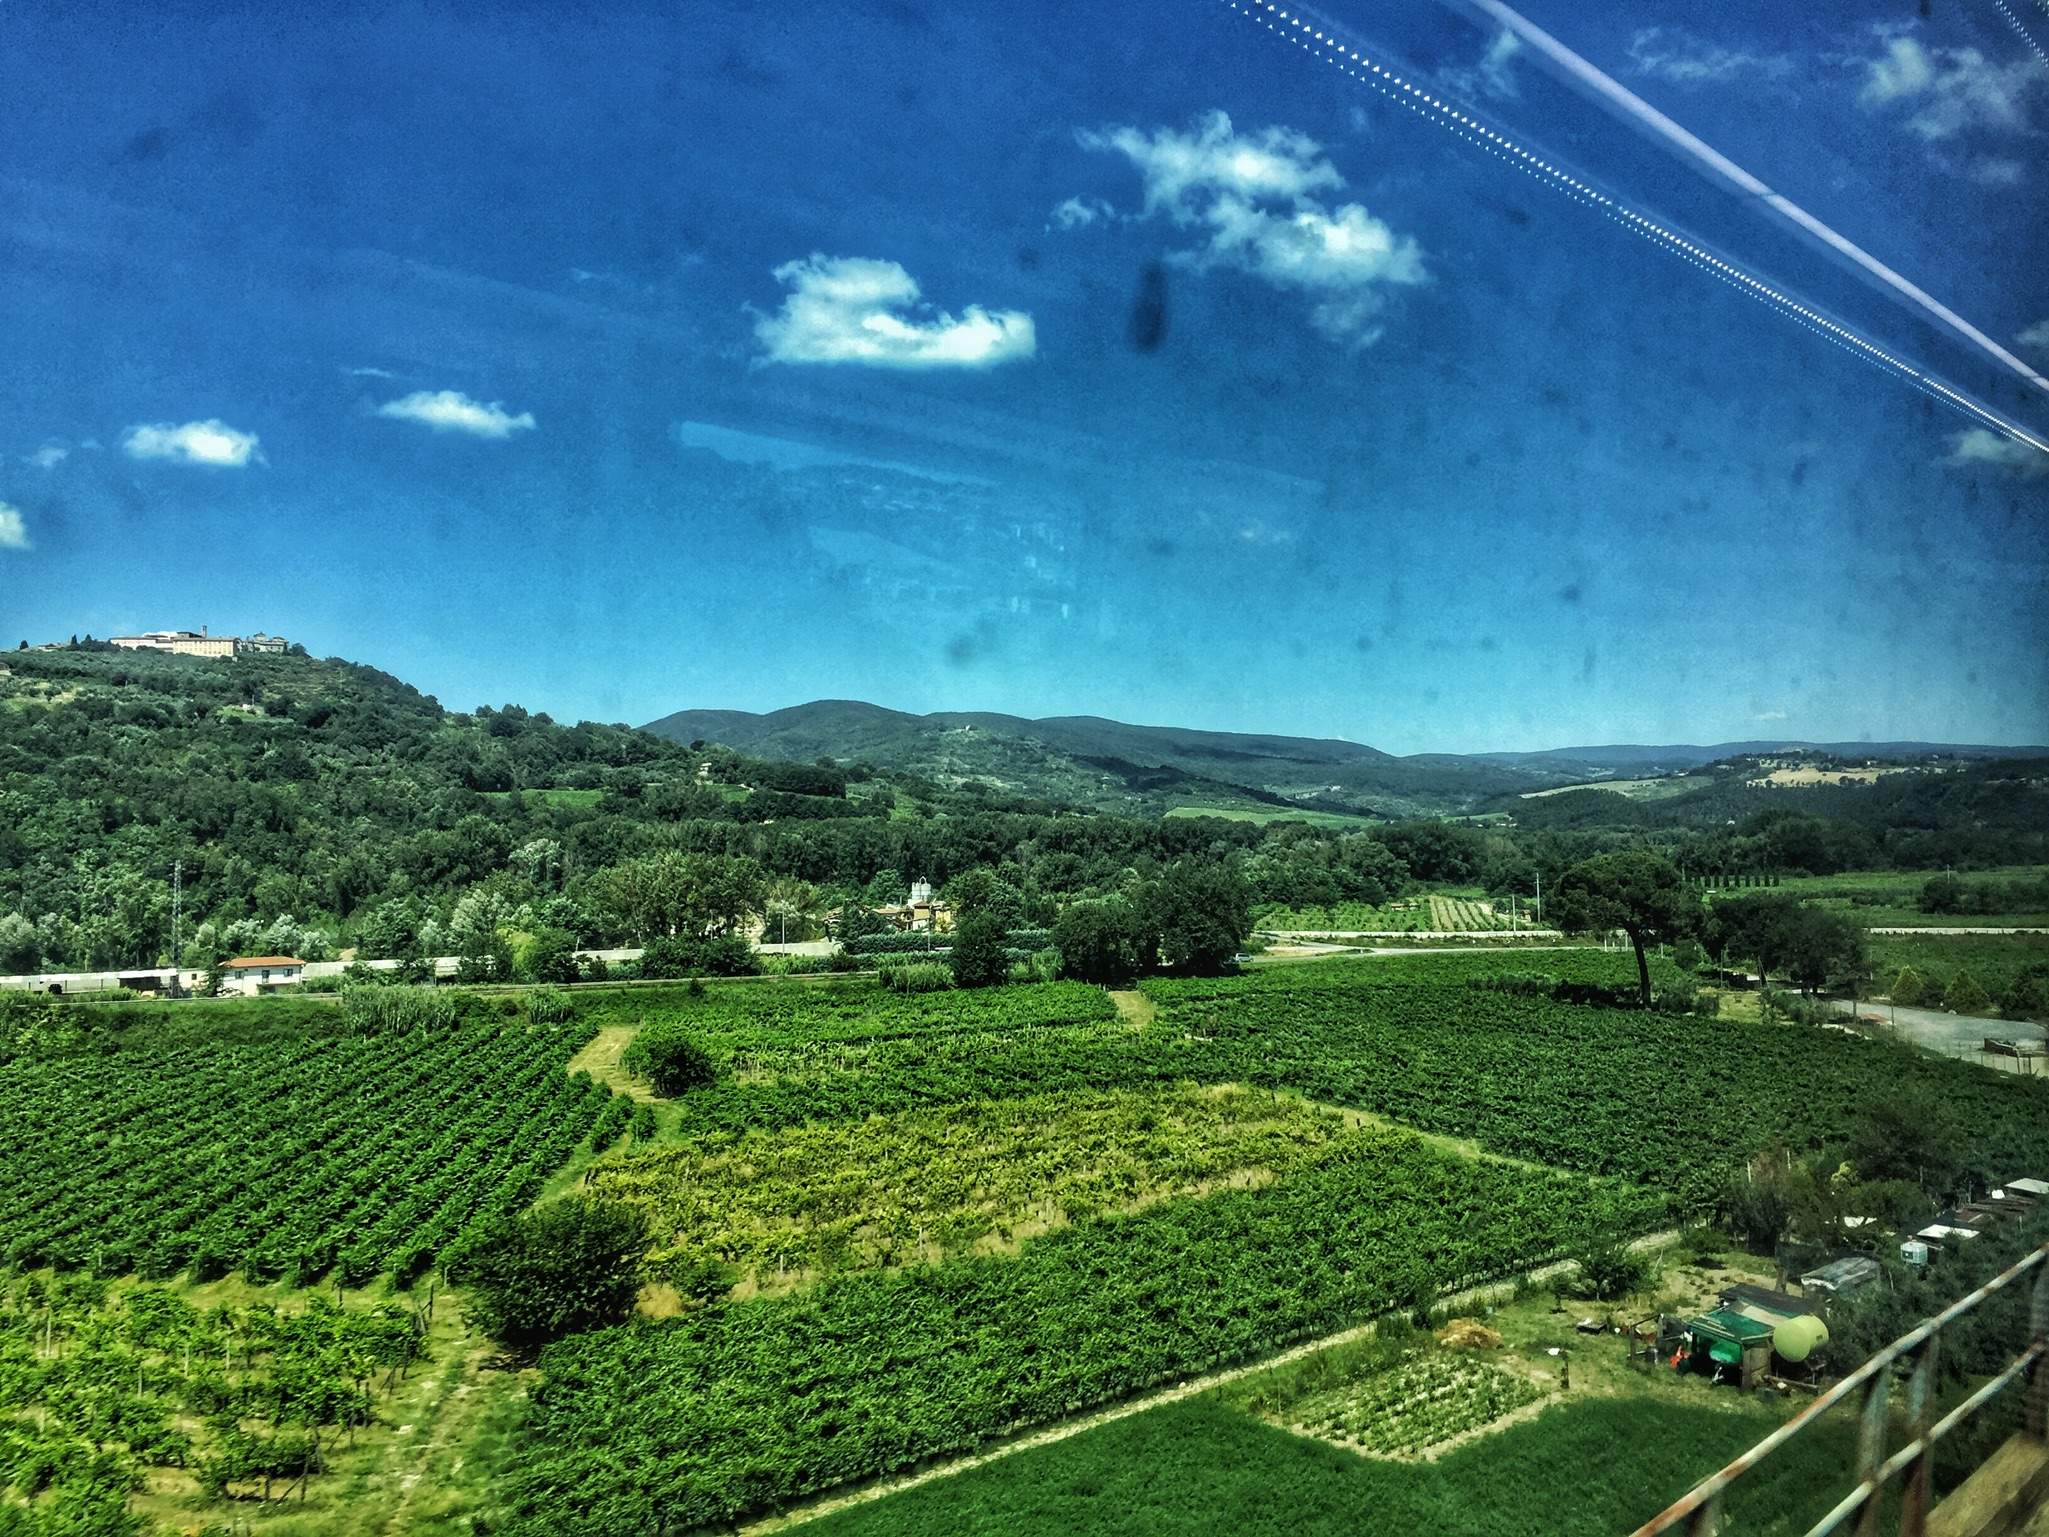 On the train to Florence we got to see the Italian country side for the first time.